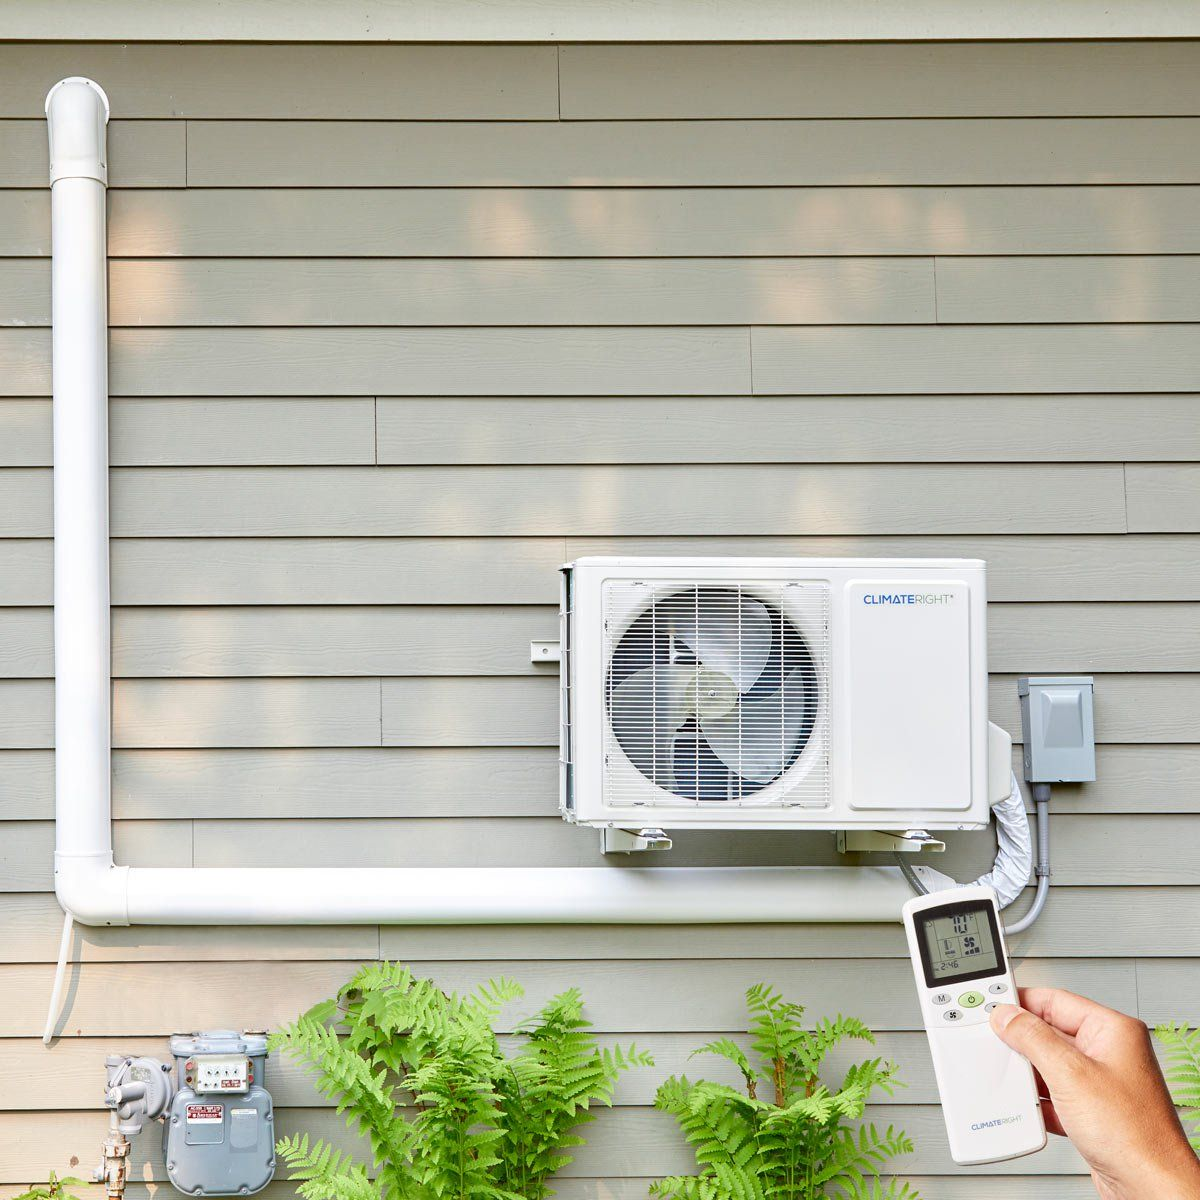 Diy ductless air conditioning with images ductless air